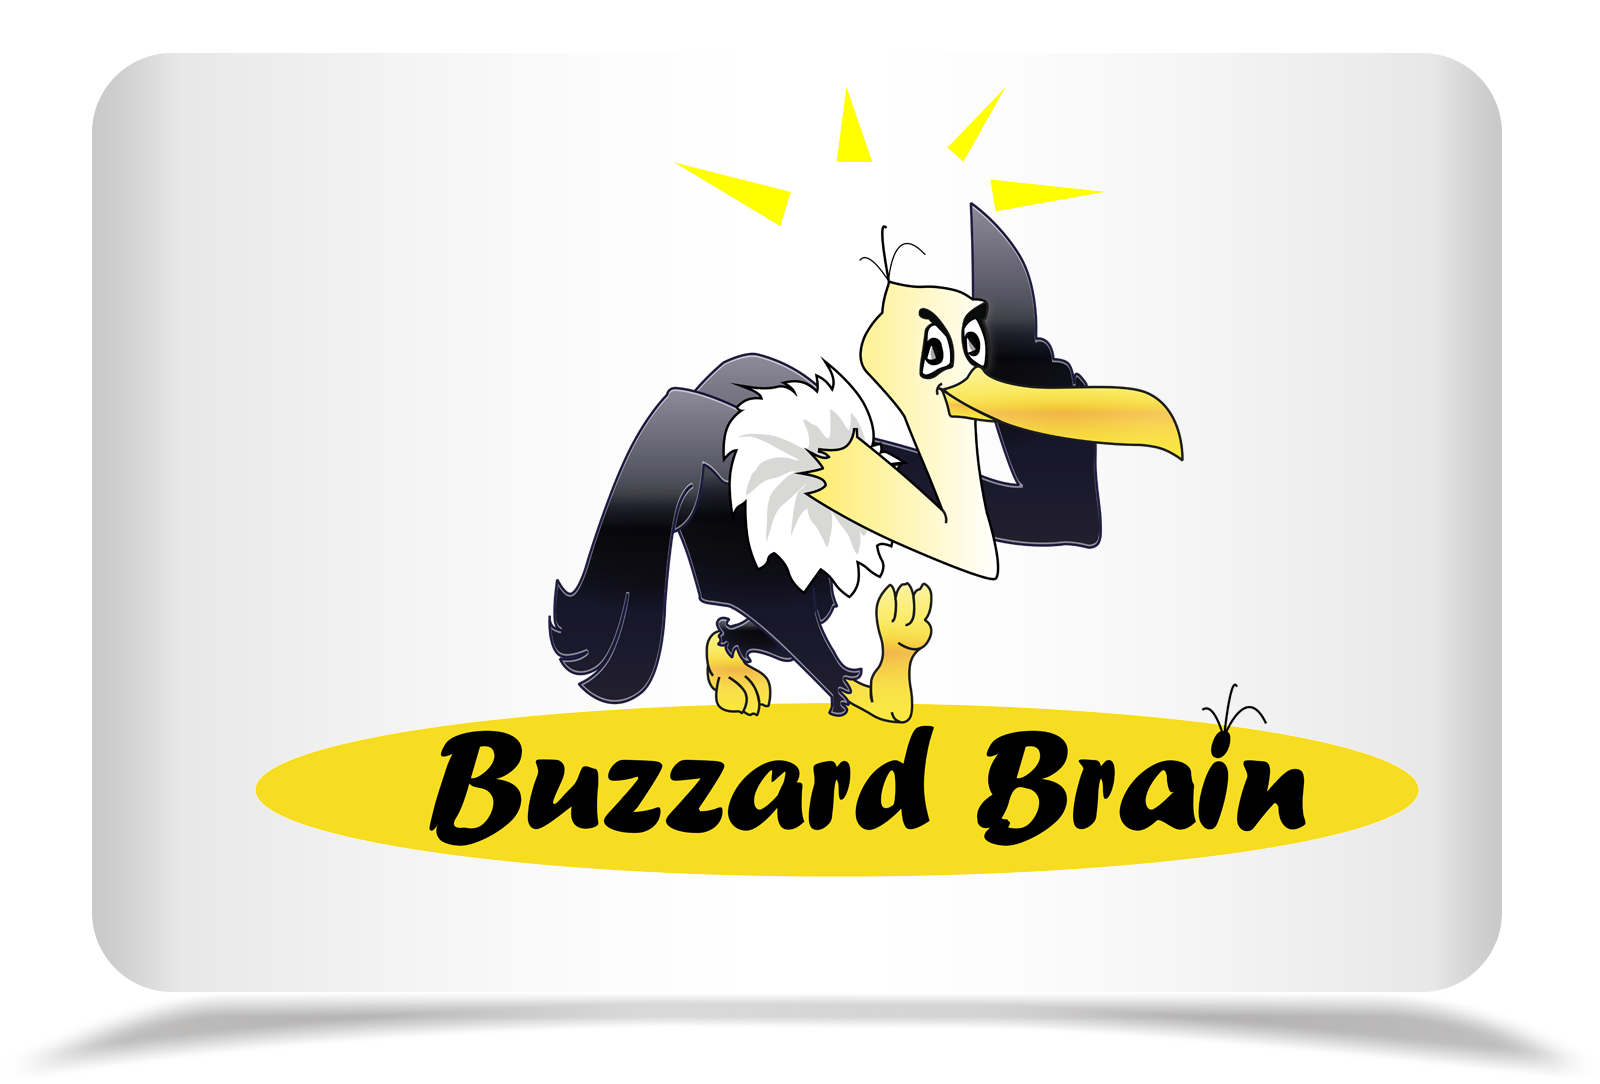 Logo Design by Rozsa Matyas - Entry No. 66 in the Logo Design Contest Buzzard Brain Logo Design.